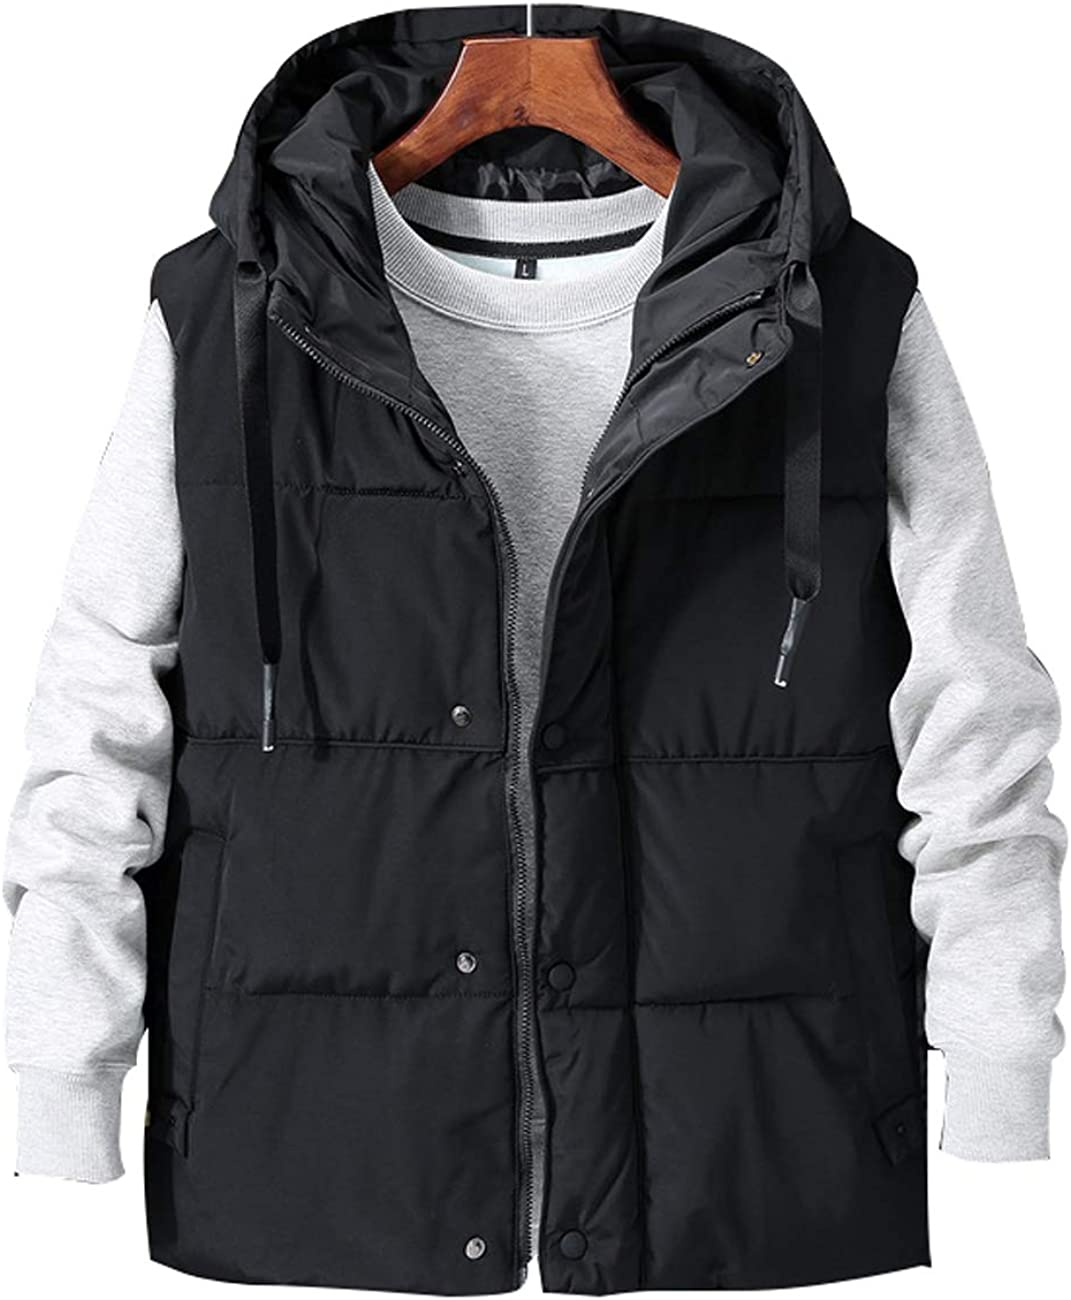 Zoulee Men's or Women's Stylish Padded Body Warmer Vest Hooded Loose Down Vest Removable